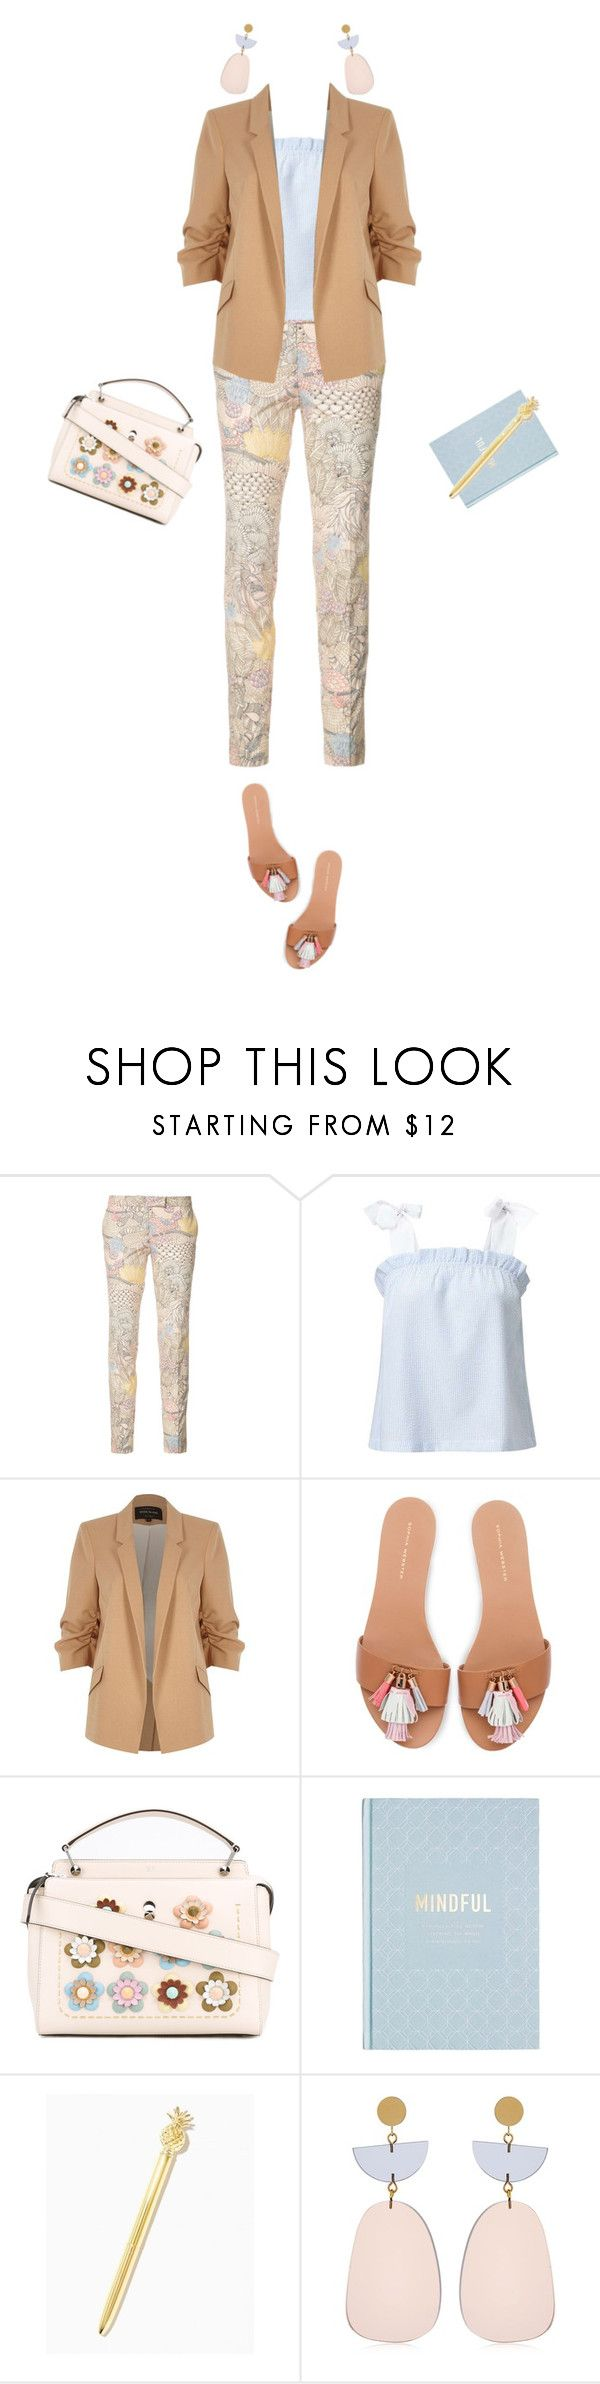 """""""WORK WEAR neutrals"""" by juuliap ❤ liked on Polyvore featuring Barbara Bui, River Island, Fendi, Isabel Marant, WorkWear, blazer, tote and journal"""